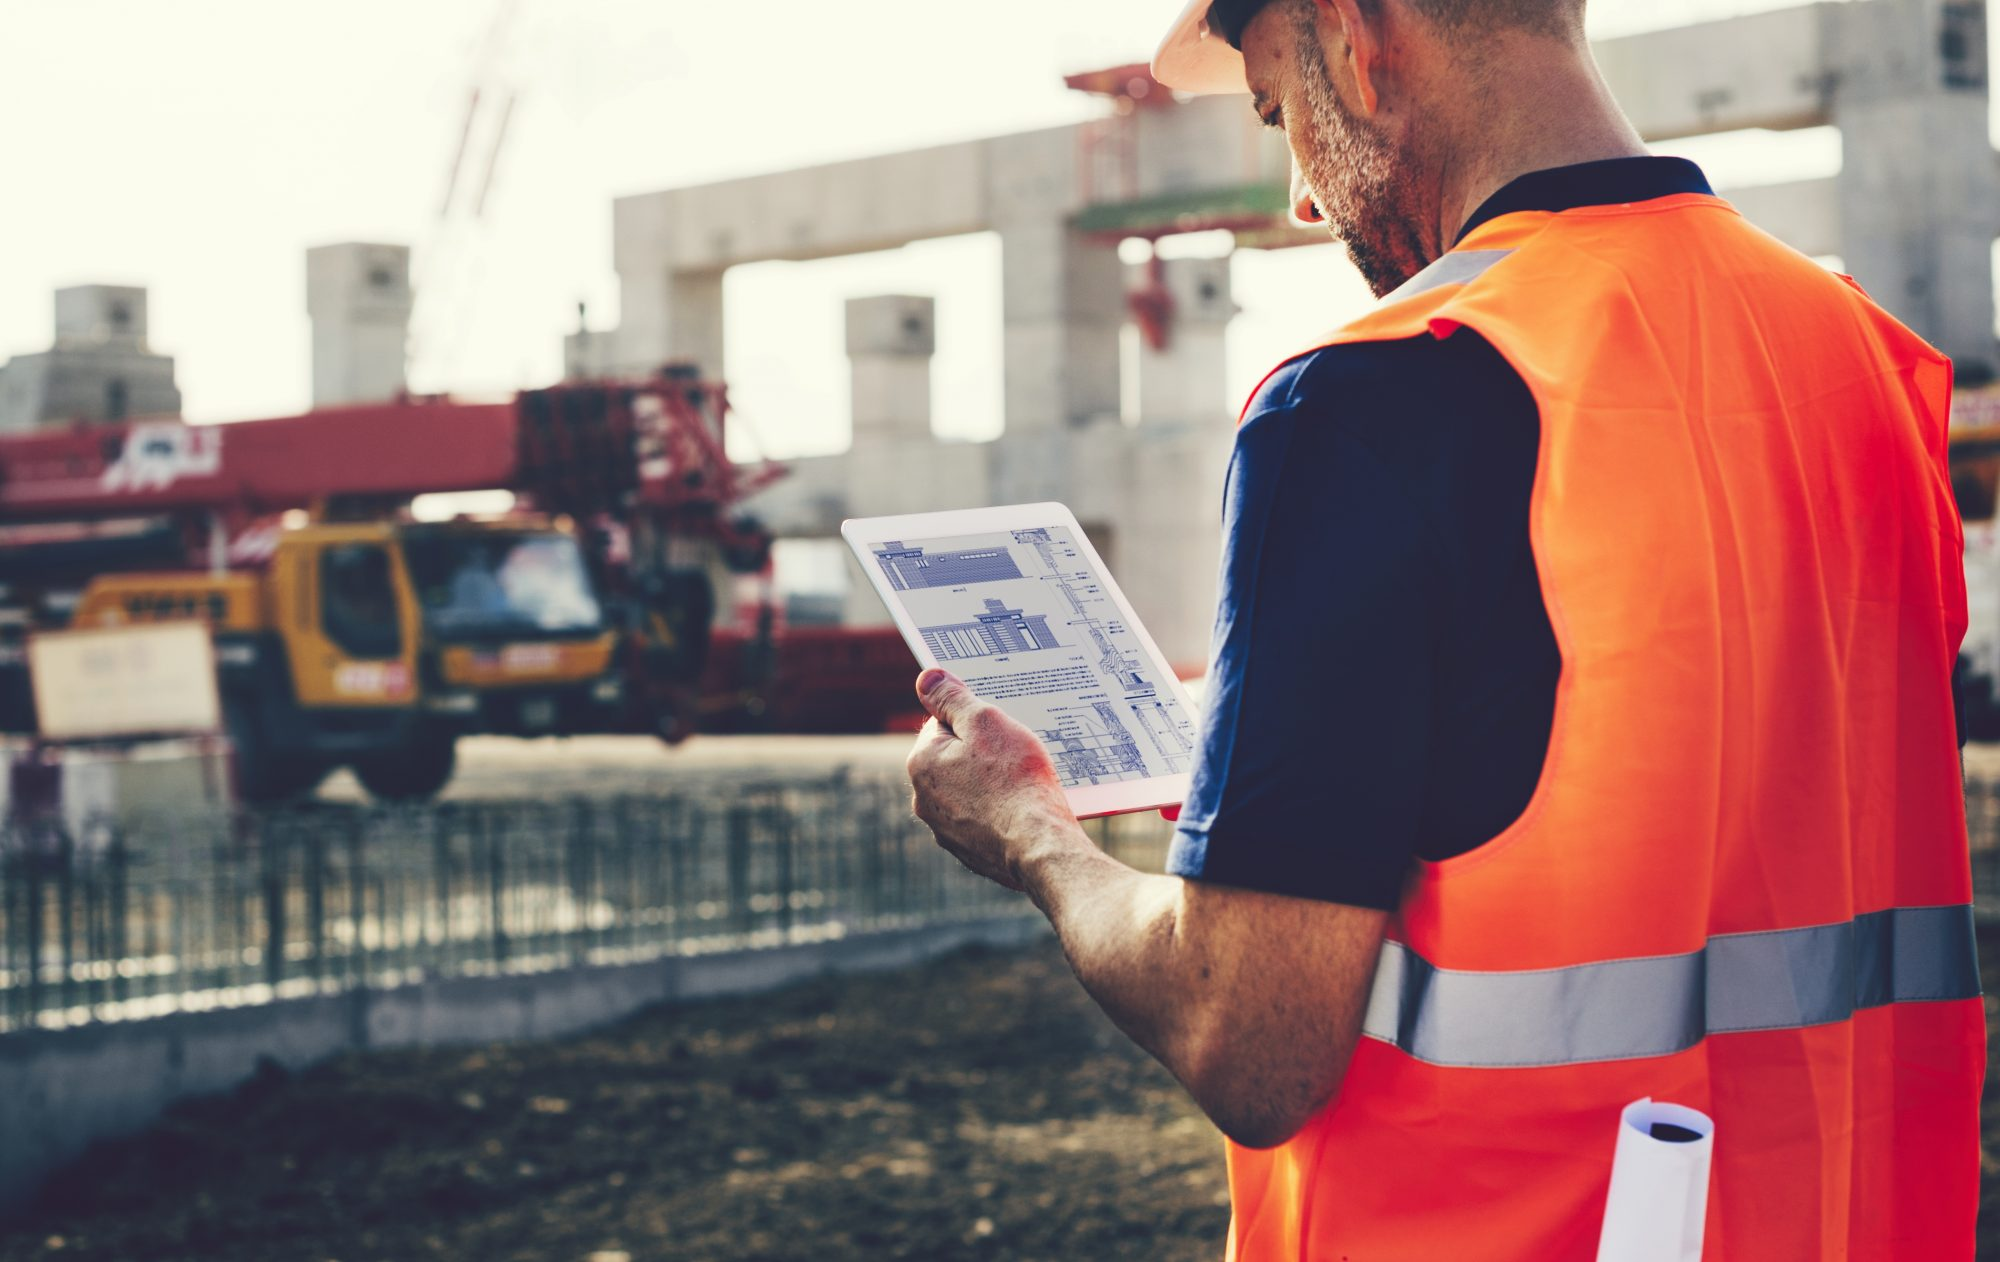 Smart Construction Network: Business and university collaboration